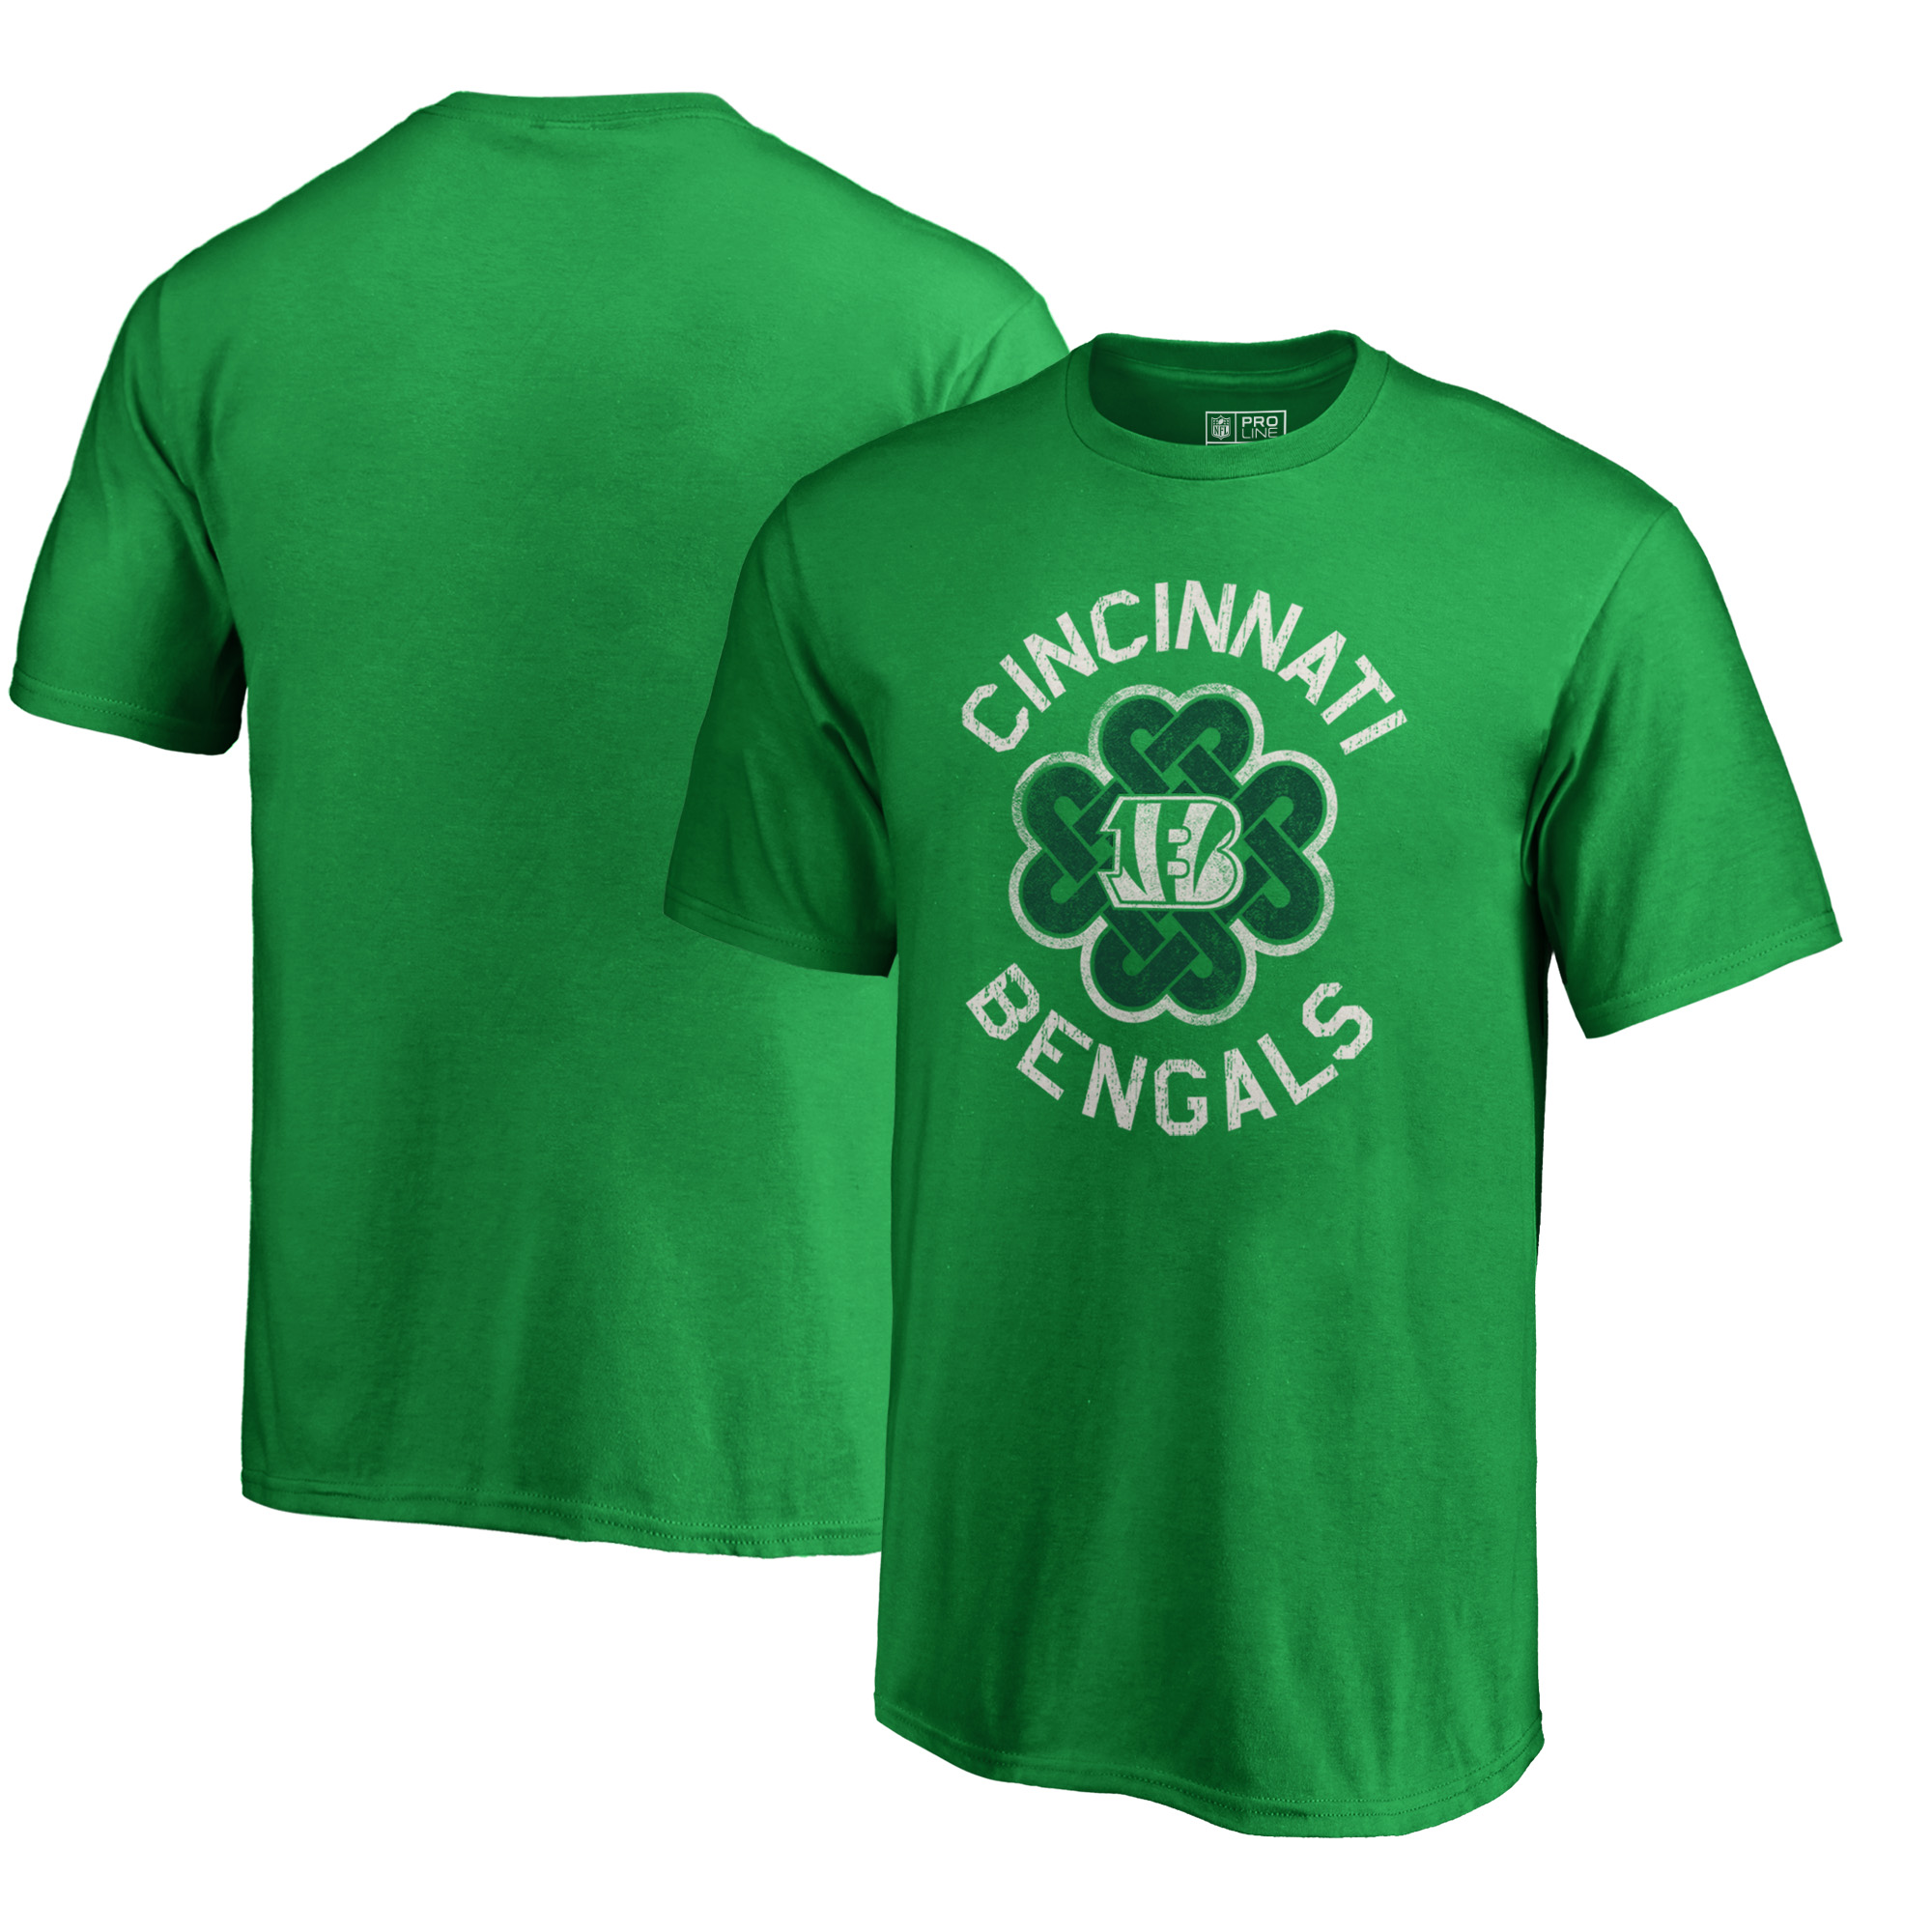 Cincinnati Bengals NFL Pro Line by Fanatics Branded Youth St. Patrick's Day Luck Tradition T-Shirt - Kelly Green